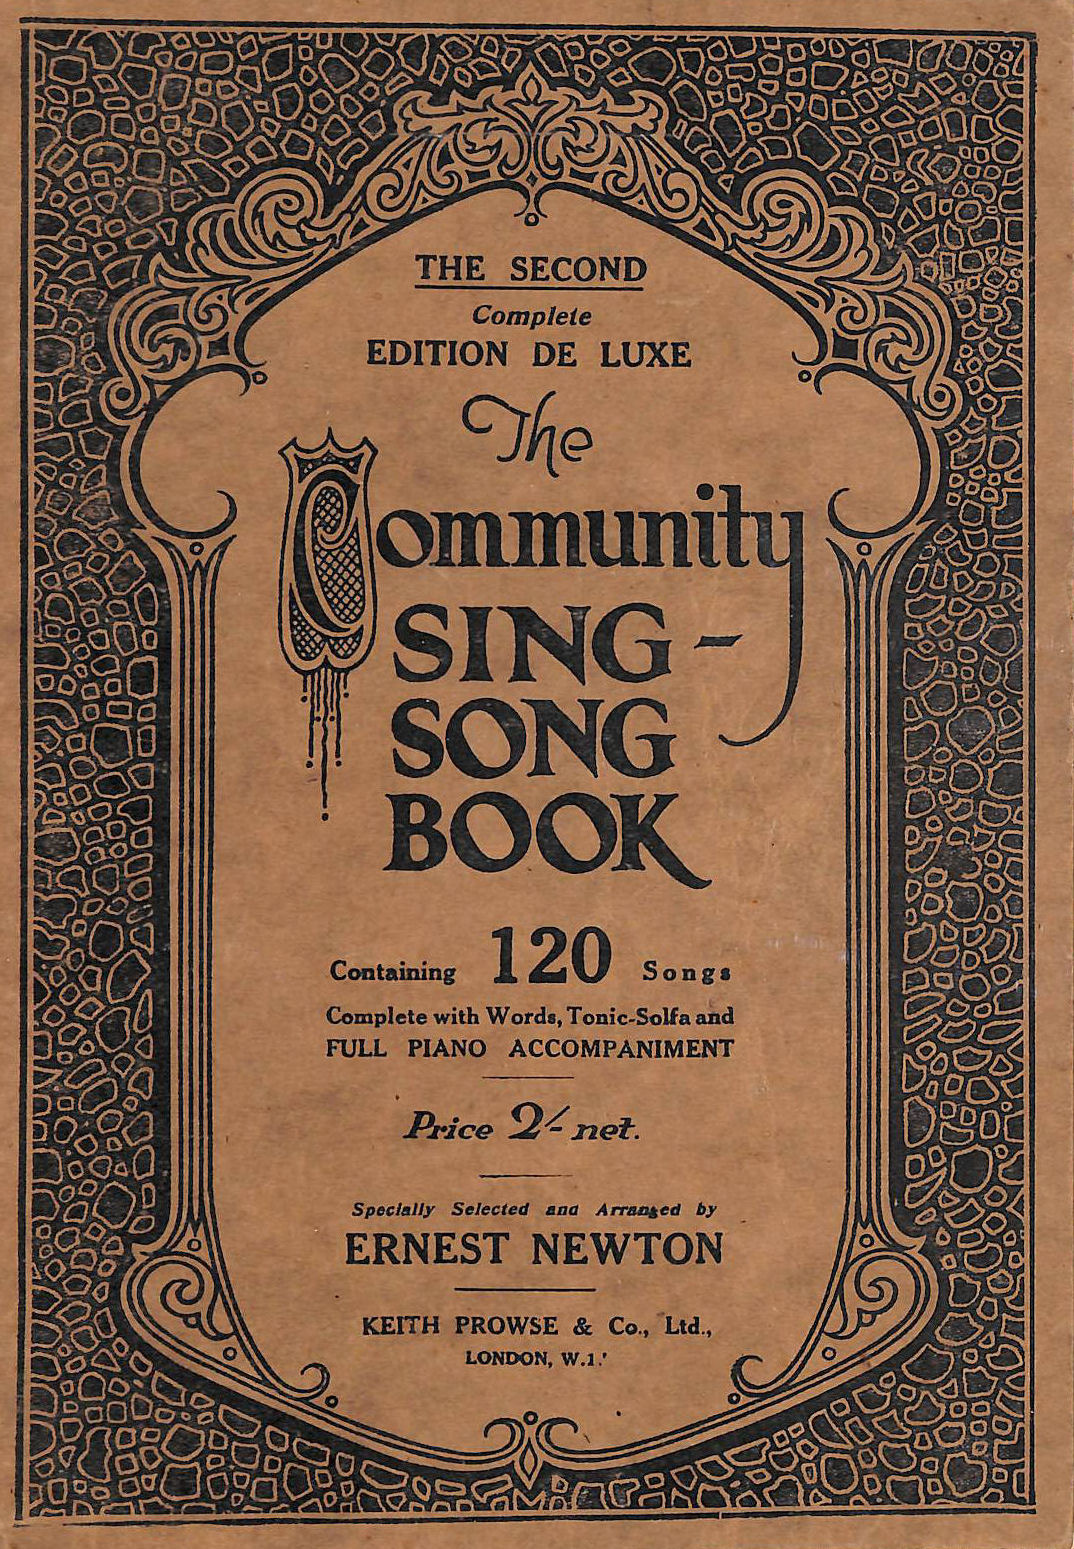 Image for The Community Sing-Song Book: 120 Songs The Second Complete Edition De Luxe